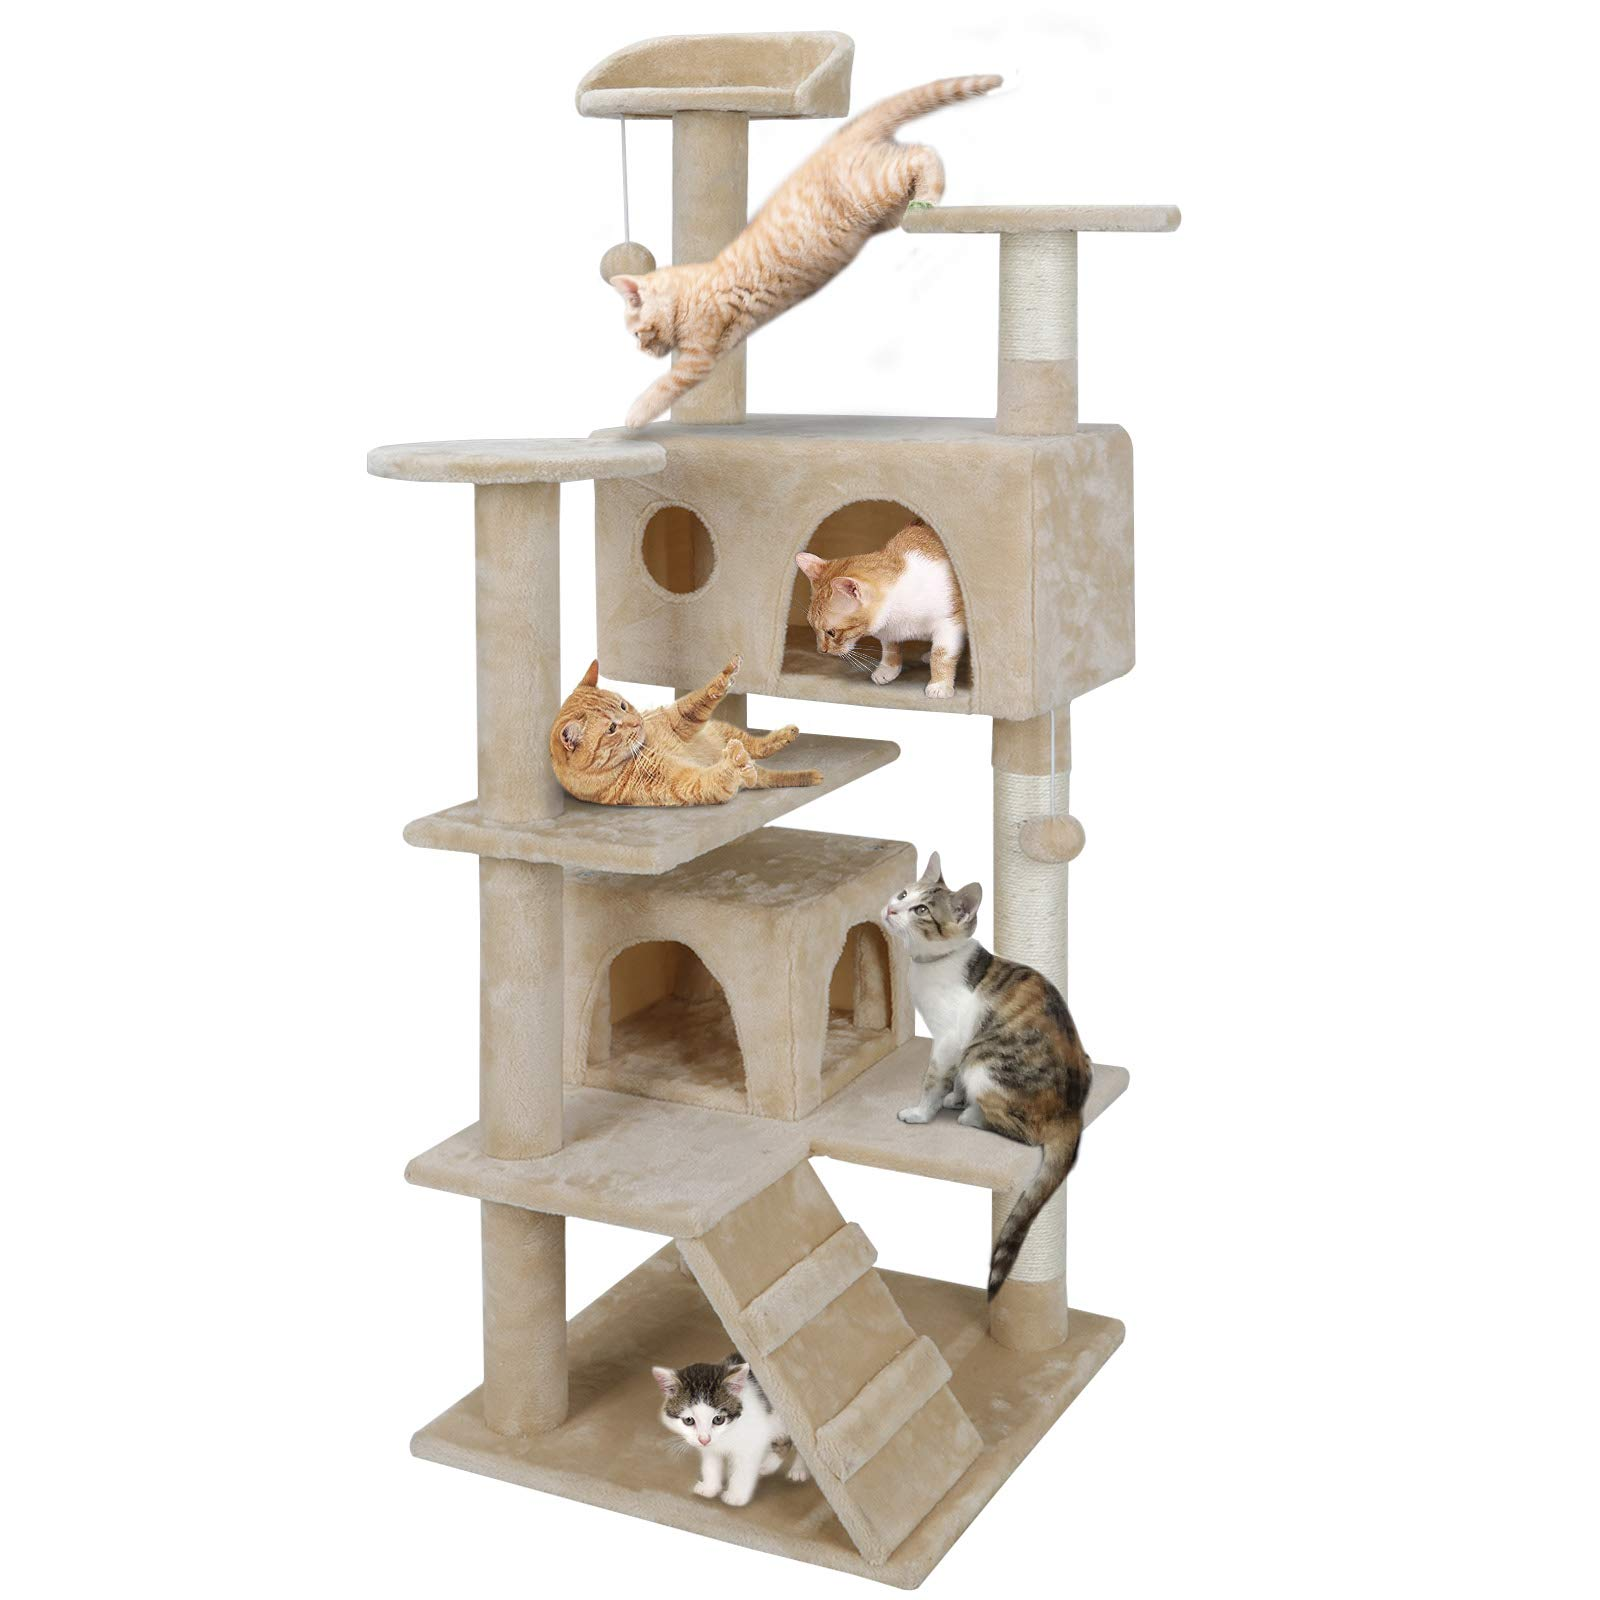 Nova Microdermabrasion 53 Inches Multi-Level Cat Tree Stand House Furniture Kittens Activity Tower with Scratching Posts…